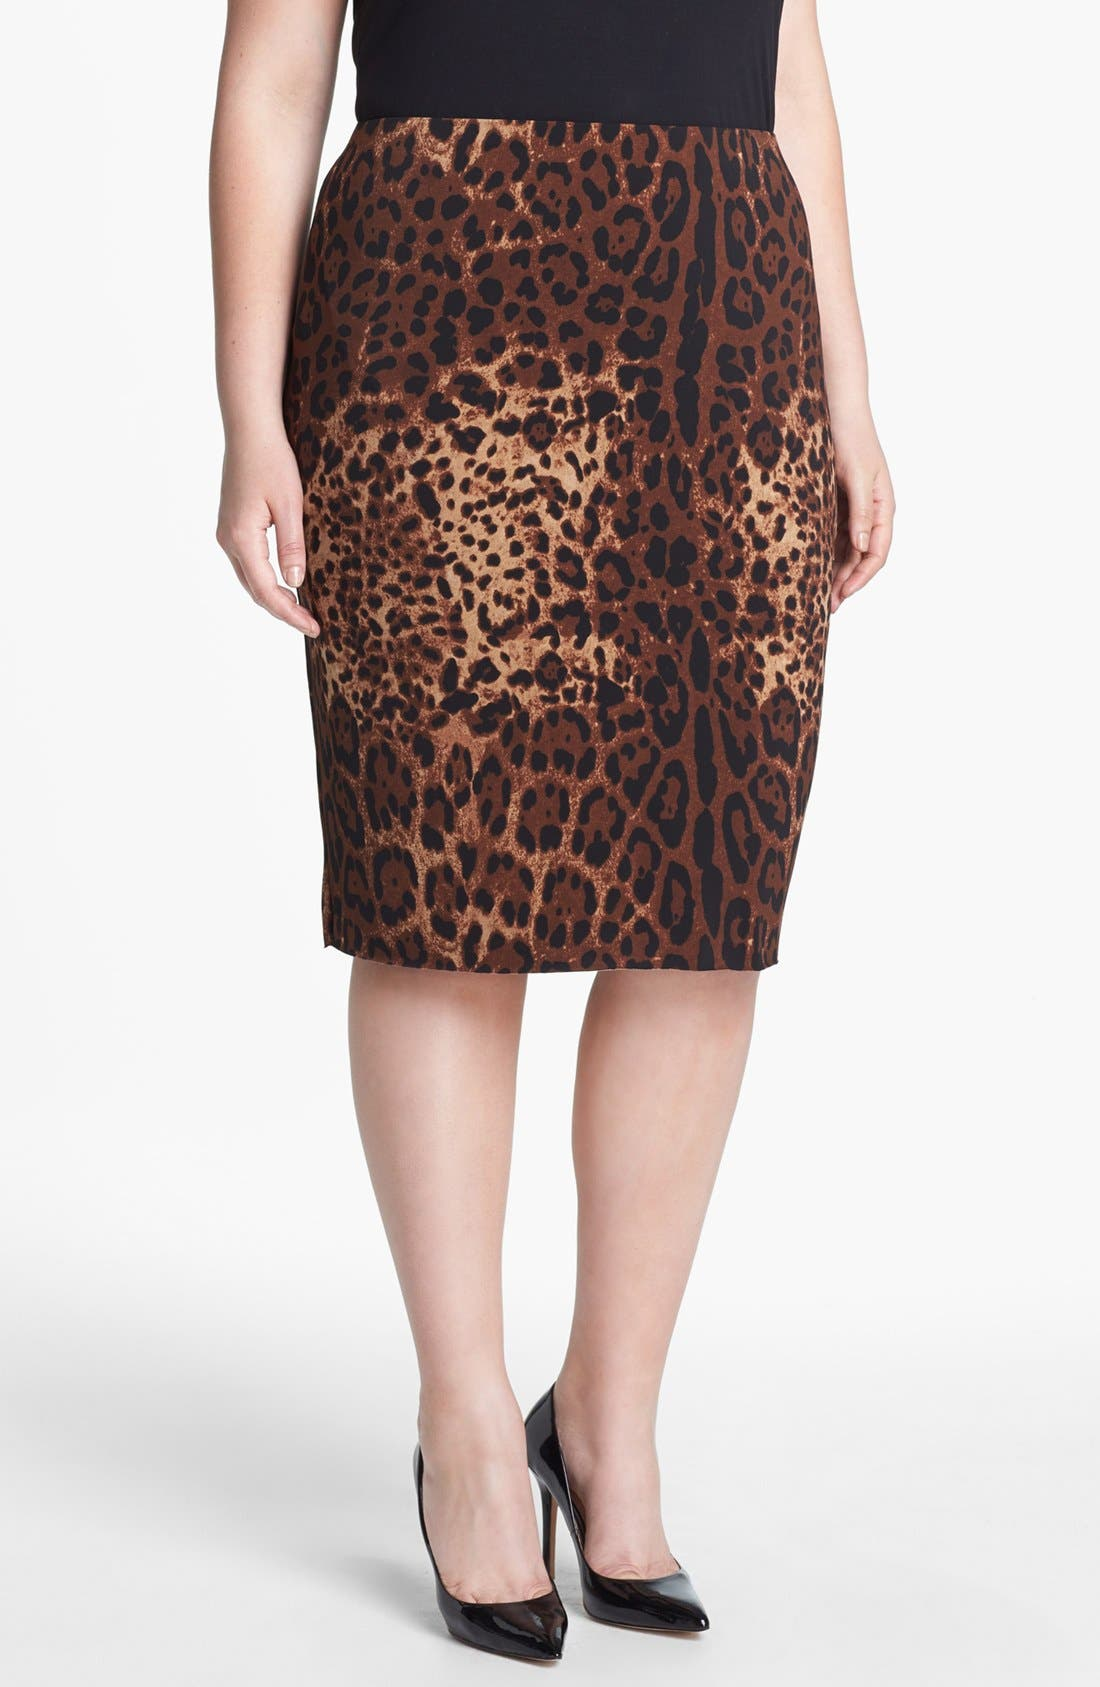 Alternate Image 1 Selected - Vince Camuto Print Pencil Skirt (Plus Size)